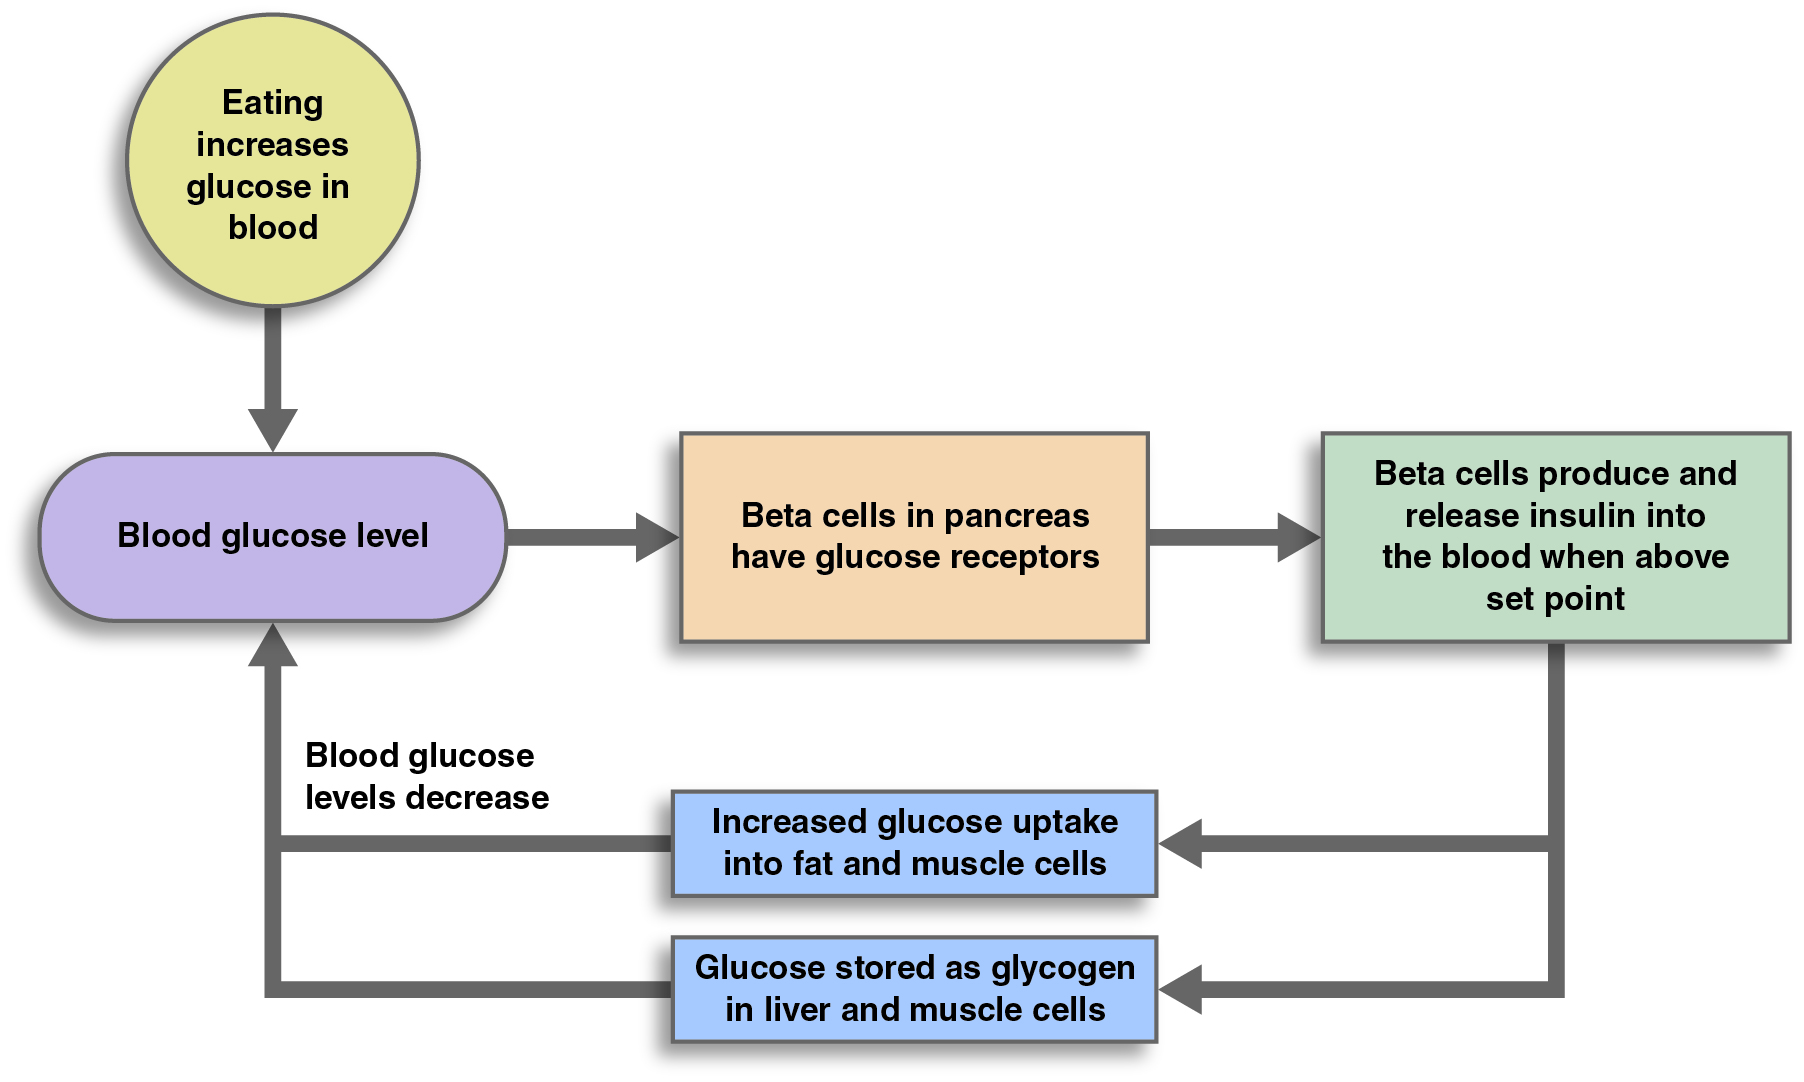 controlling blood glucose levels diagram choice image